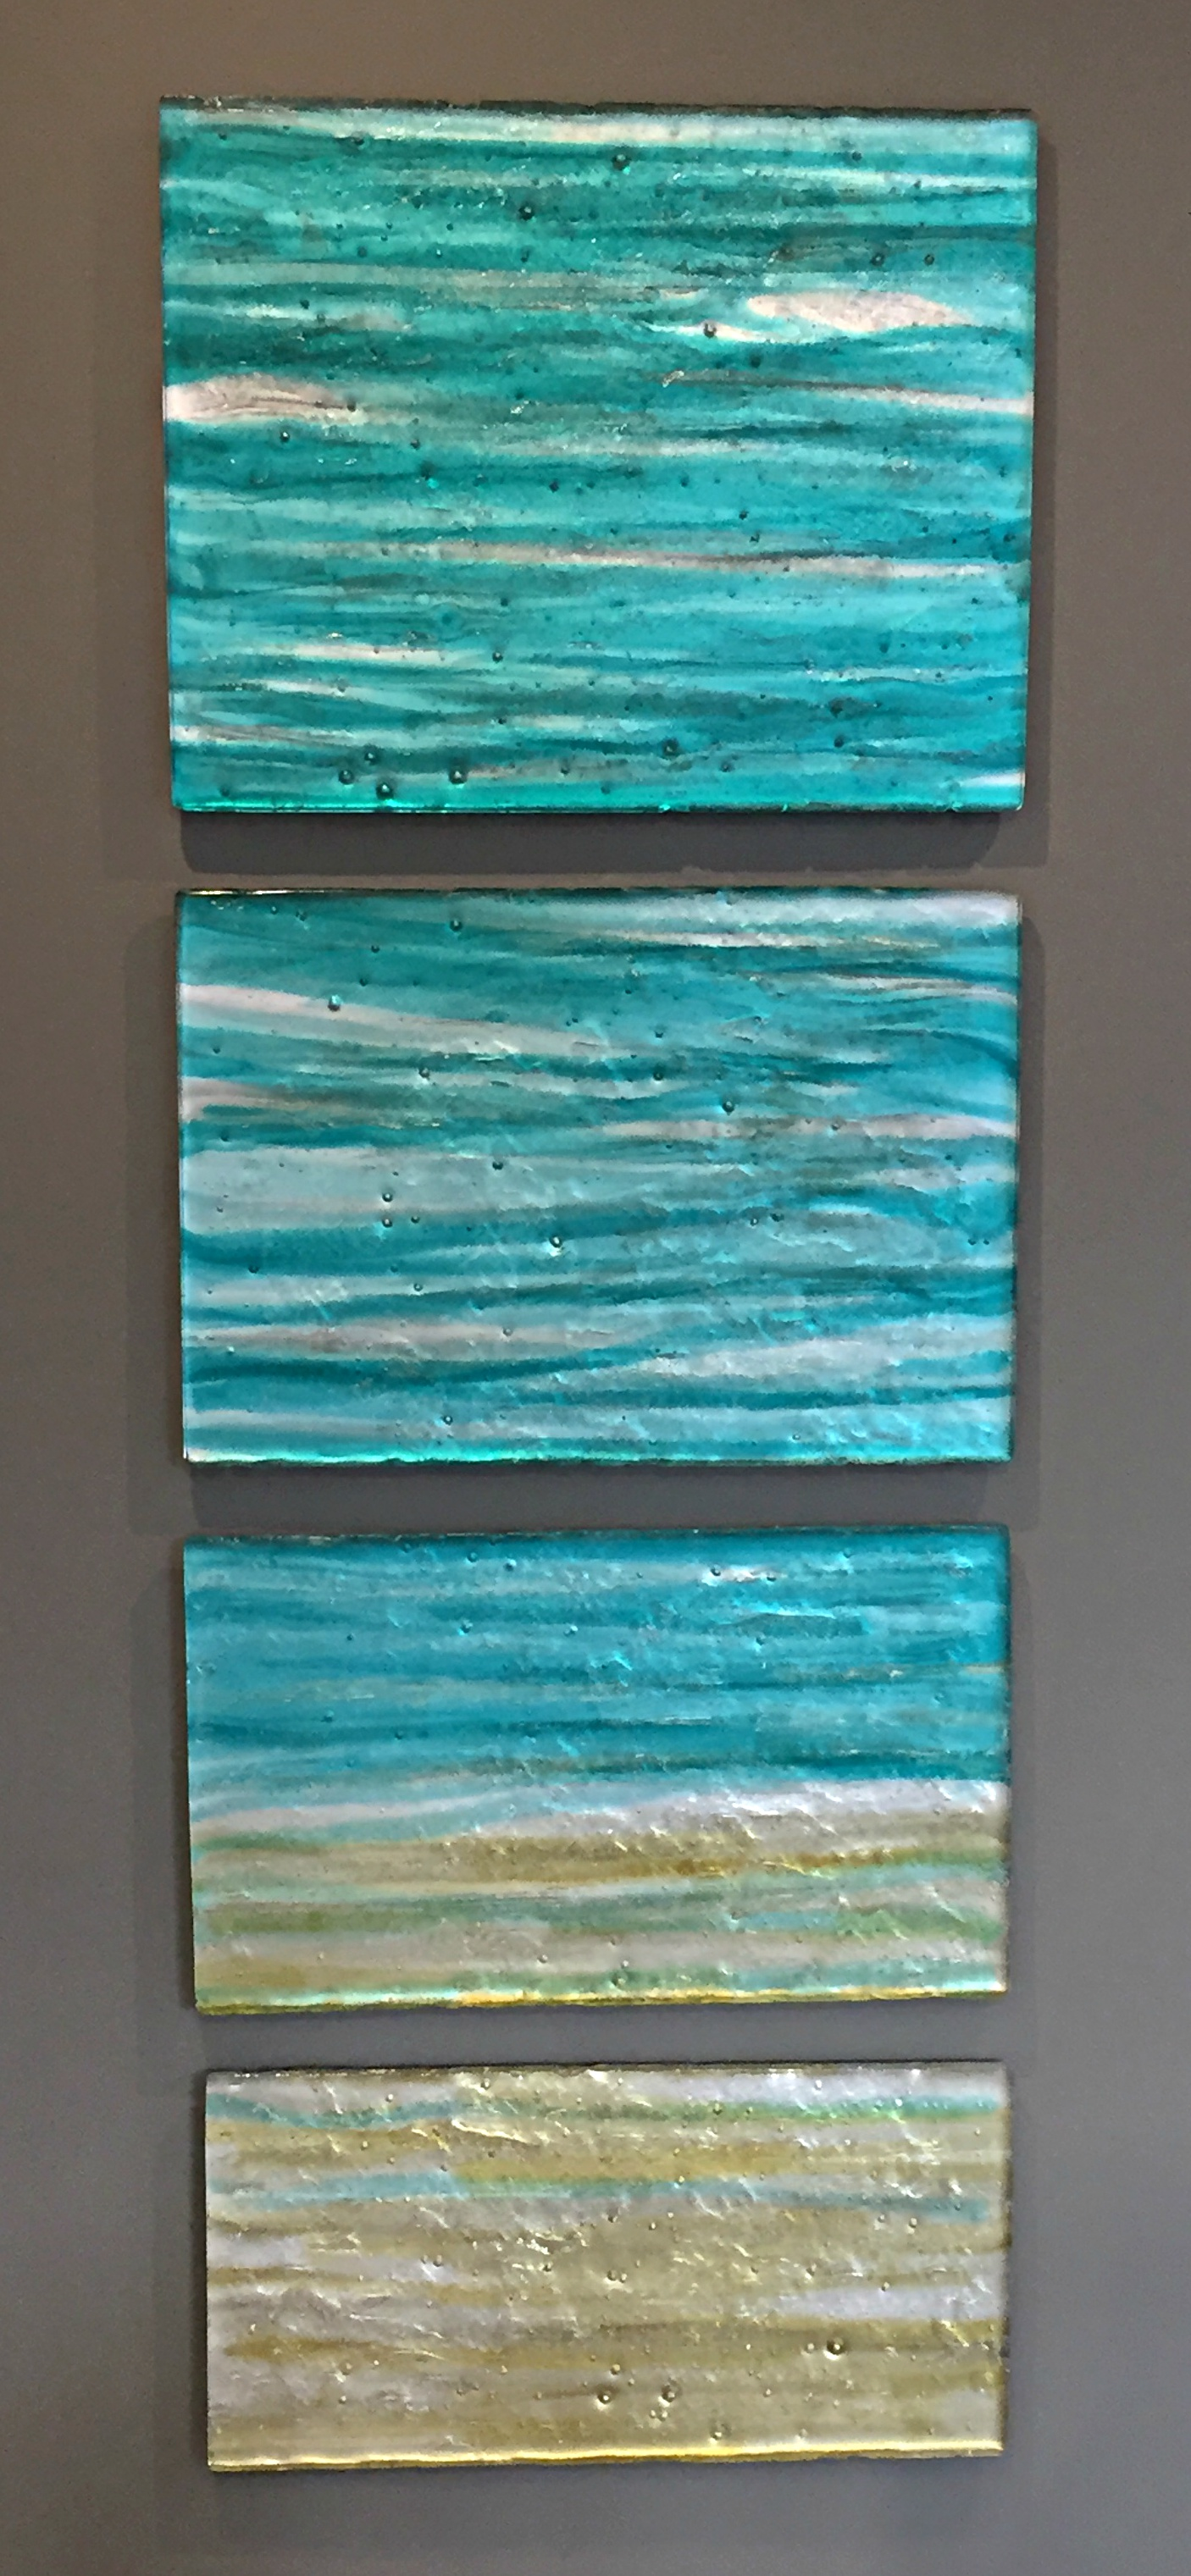 Blue Infinity, cast glass panels by Heather Cuell | Effusion Art Gallery + Cast Glass Studio, Invermere BC